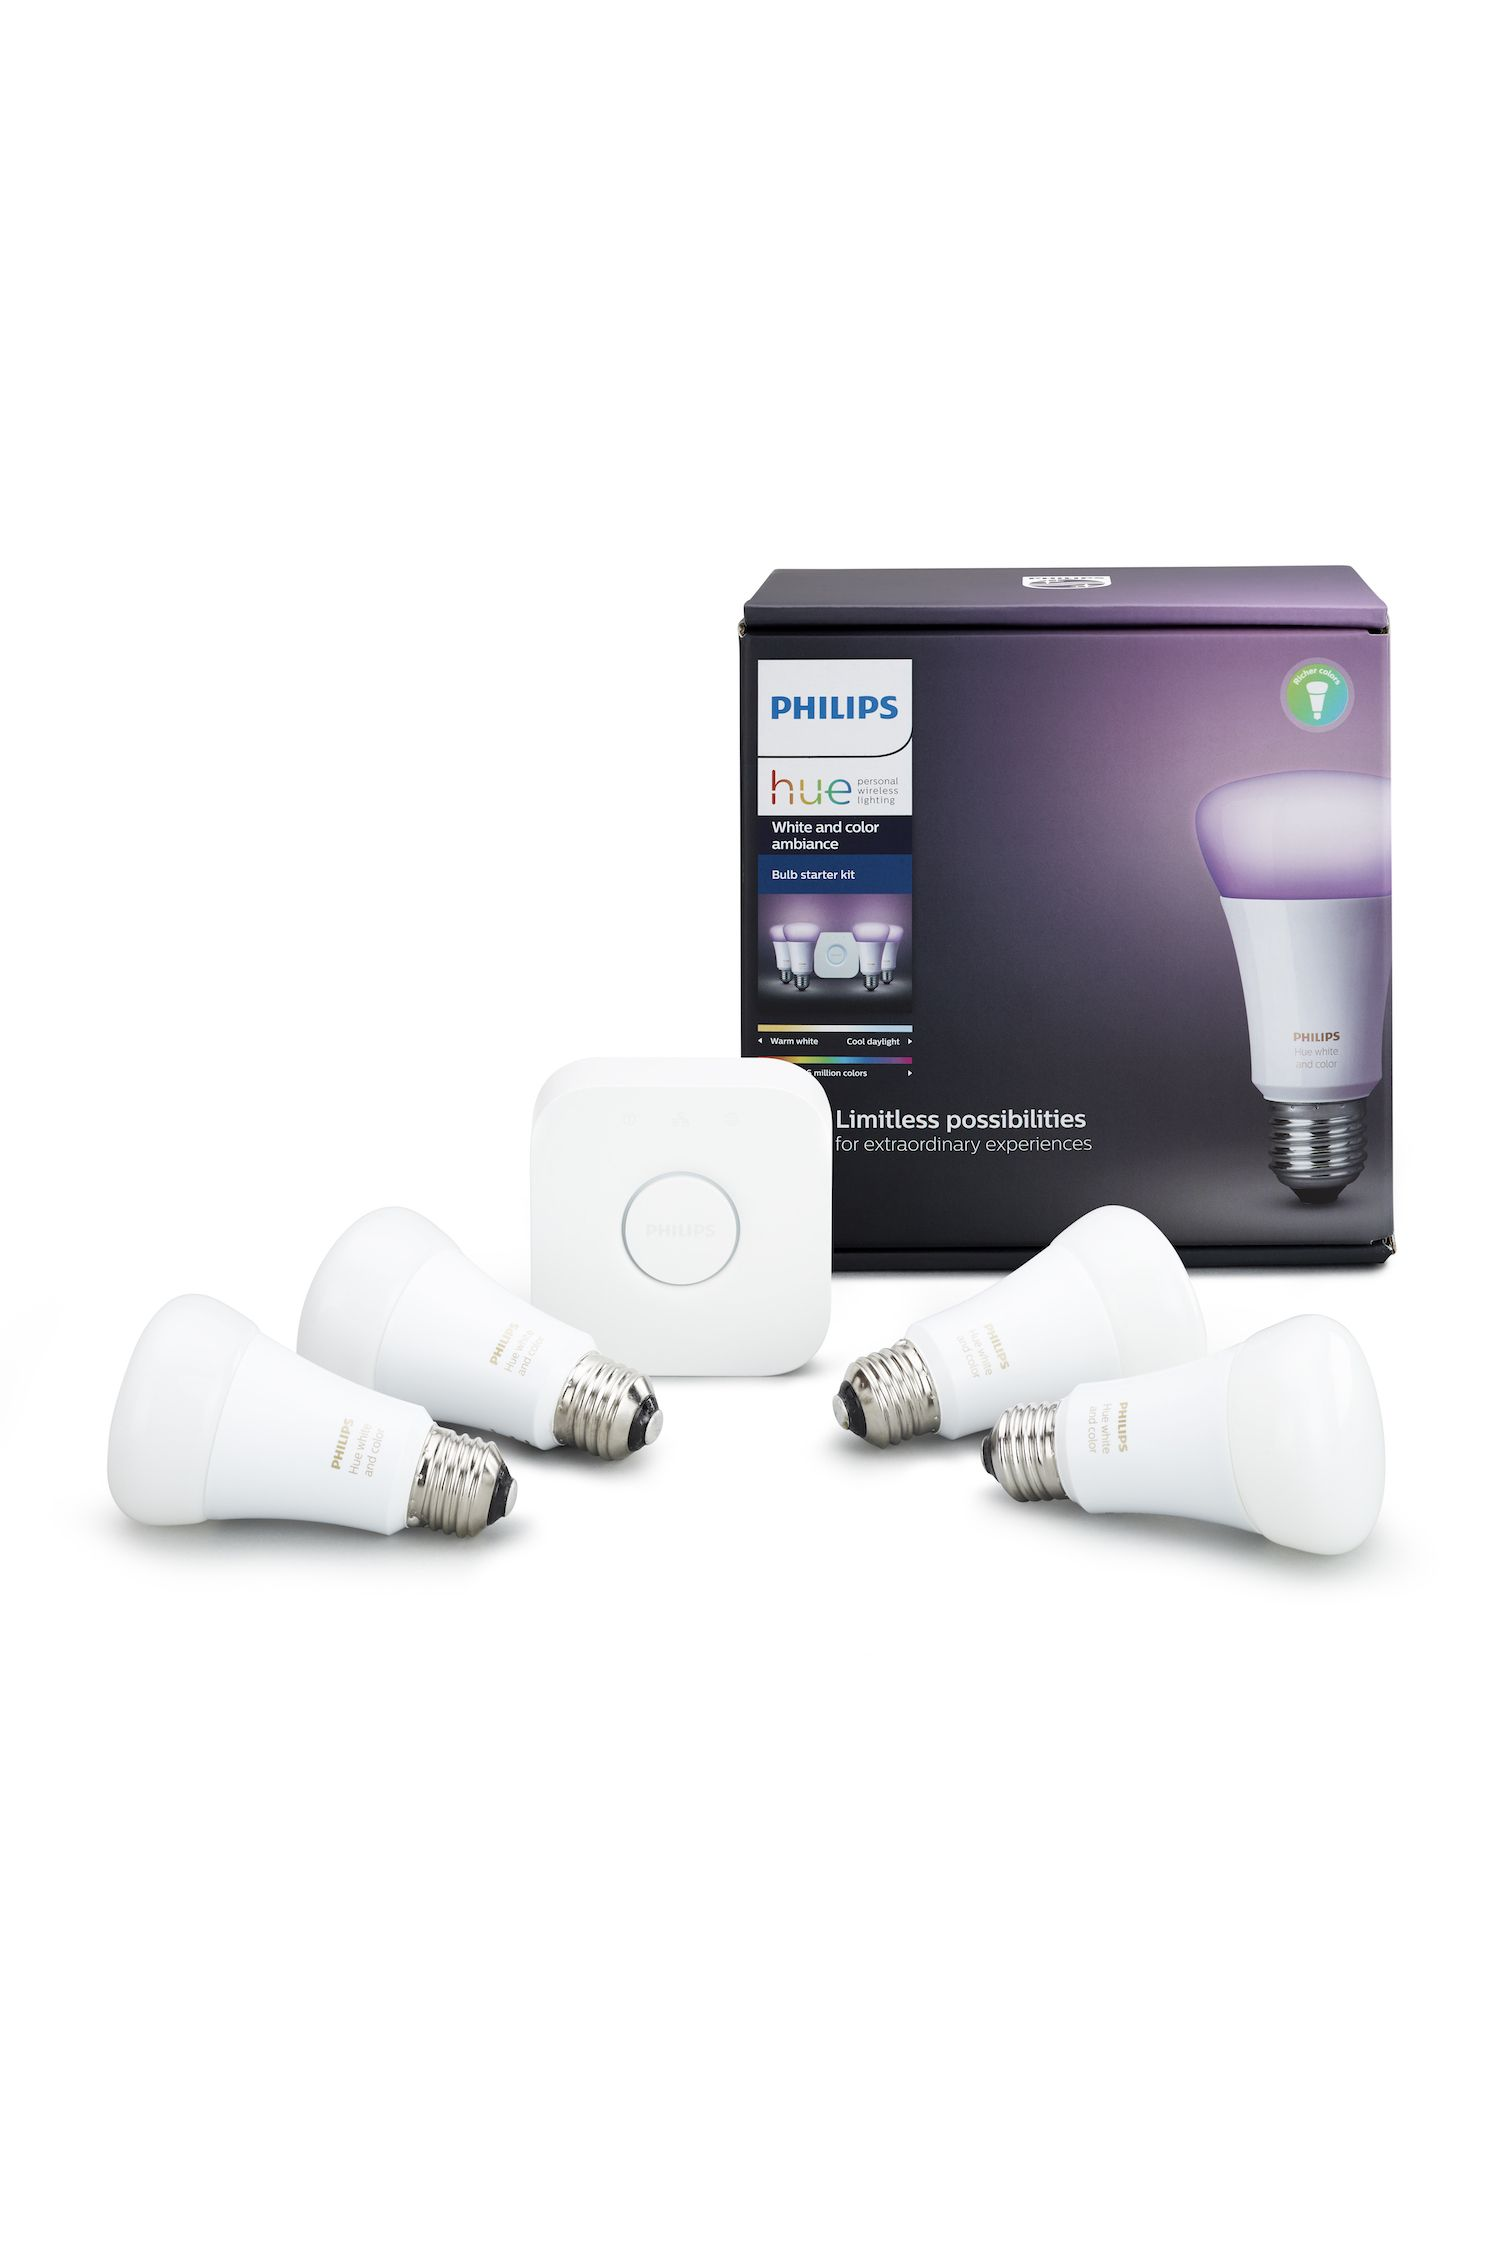 Philips Hue White and Color Ambiance Personal Lighting Starter Kit